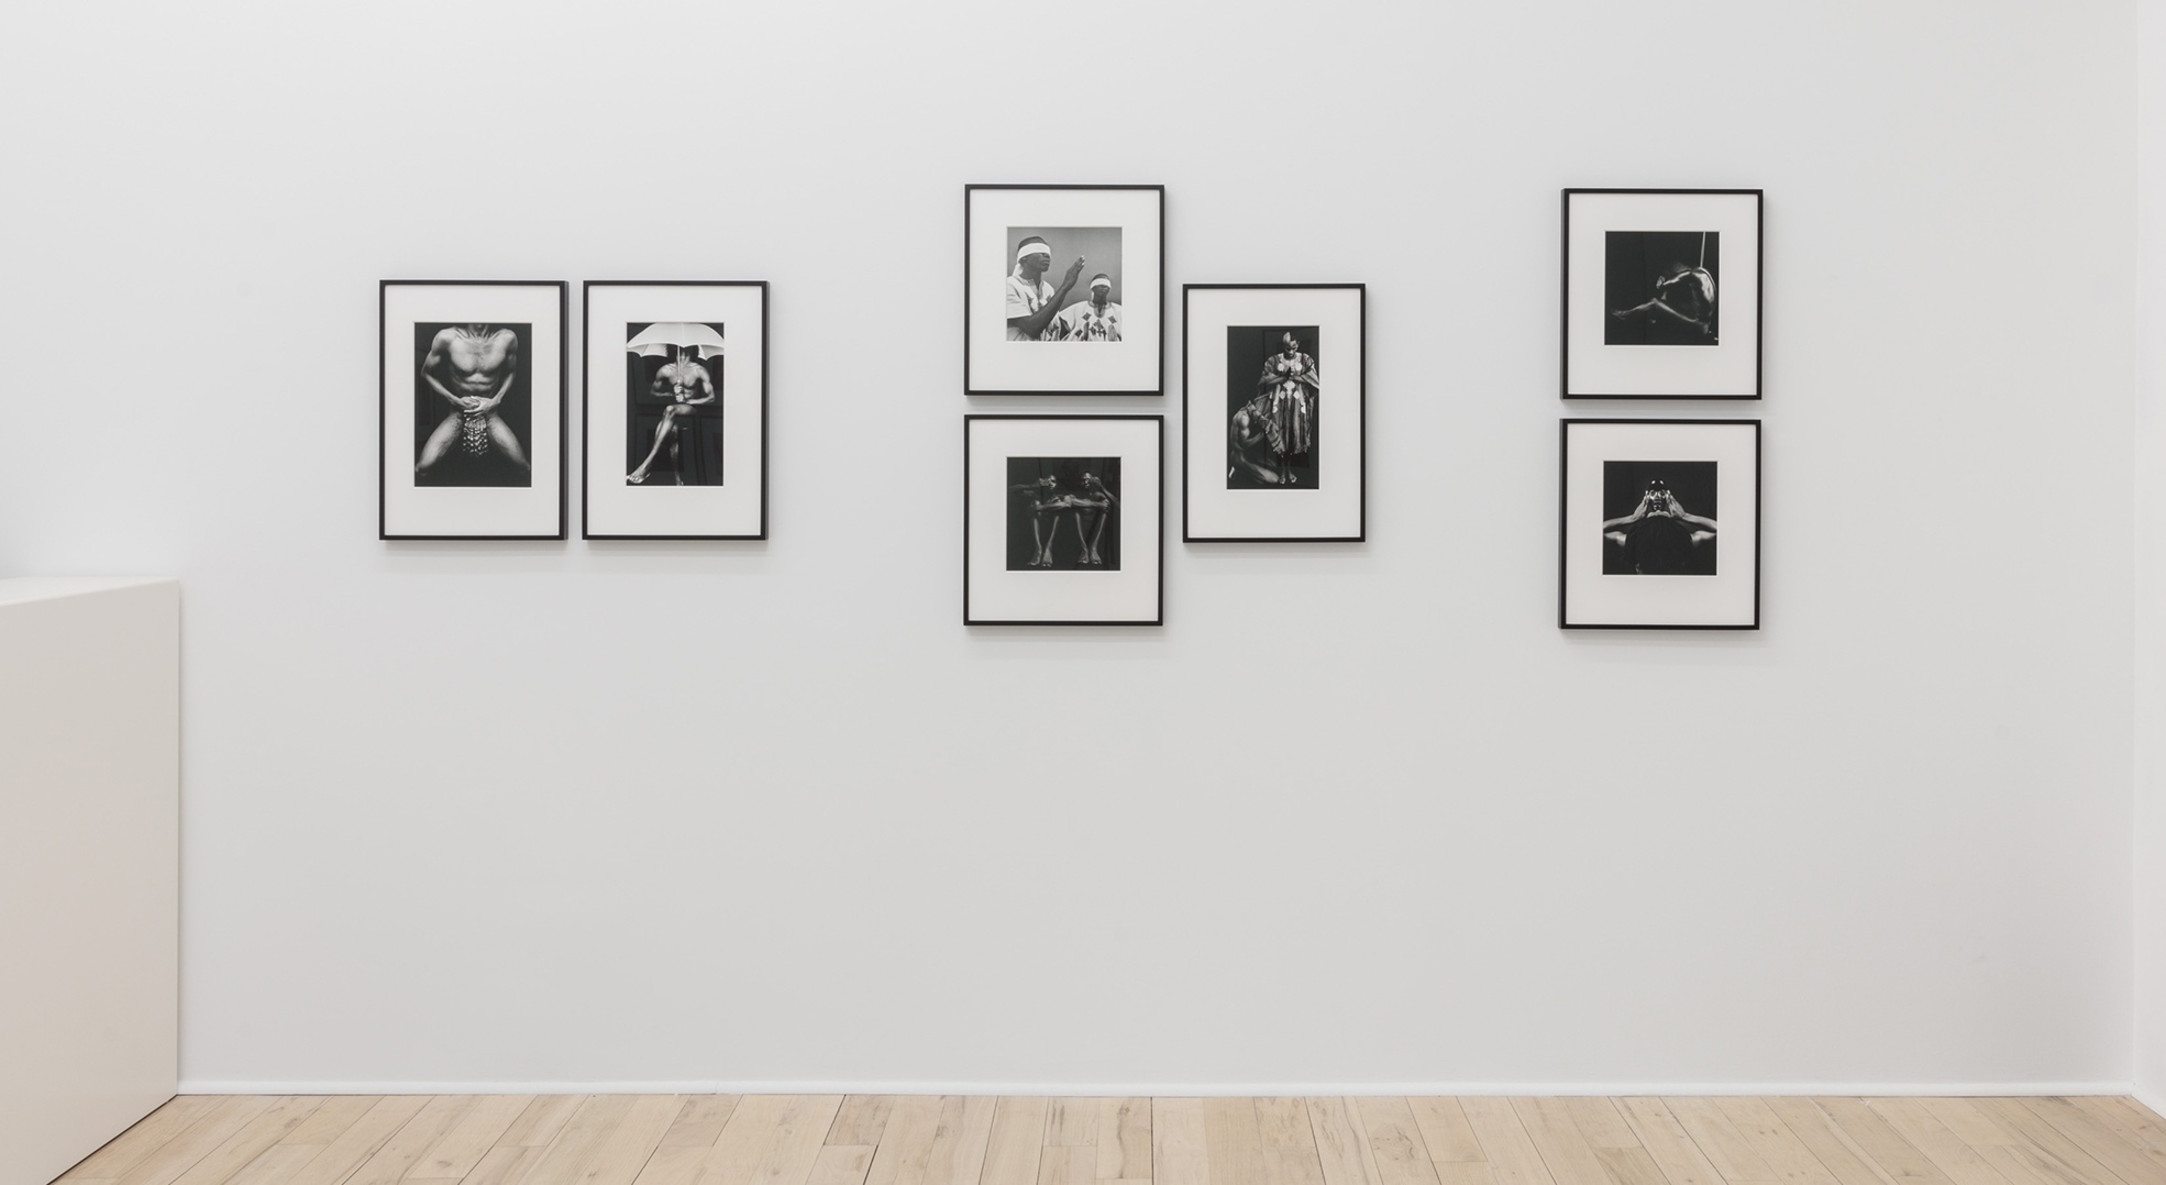 Installation view of Rotimi Fani-Kayode, Rage & Desire at Hales Gallery Project Room, New York, 2018